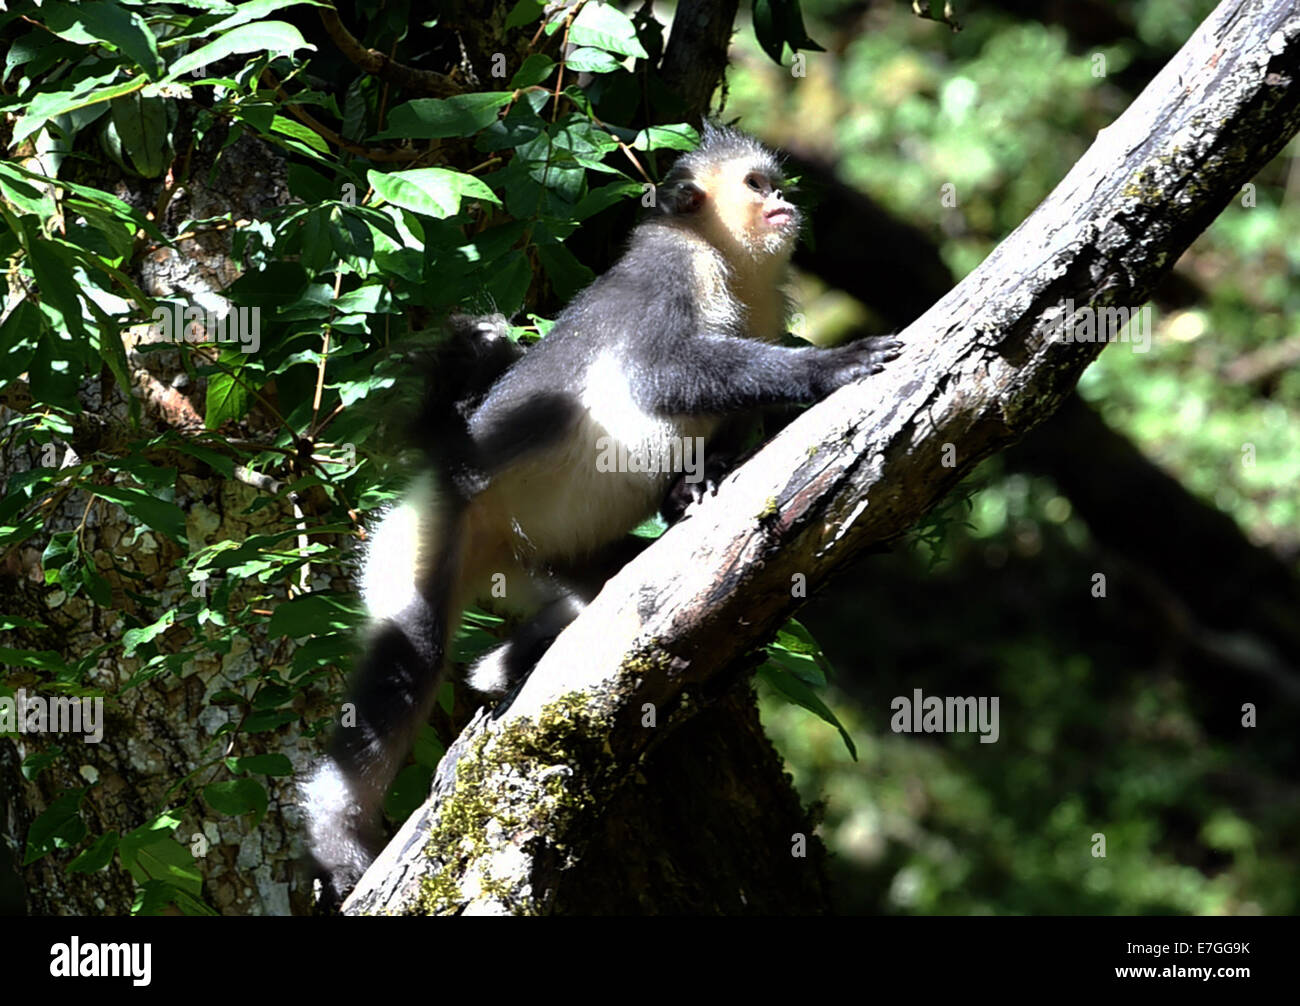 Dequn, Yunnan, China. 17th September, 2014. A black snub-nosed monkey (Rhinopithecus bieti) looks for food in the - Stock Image